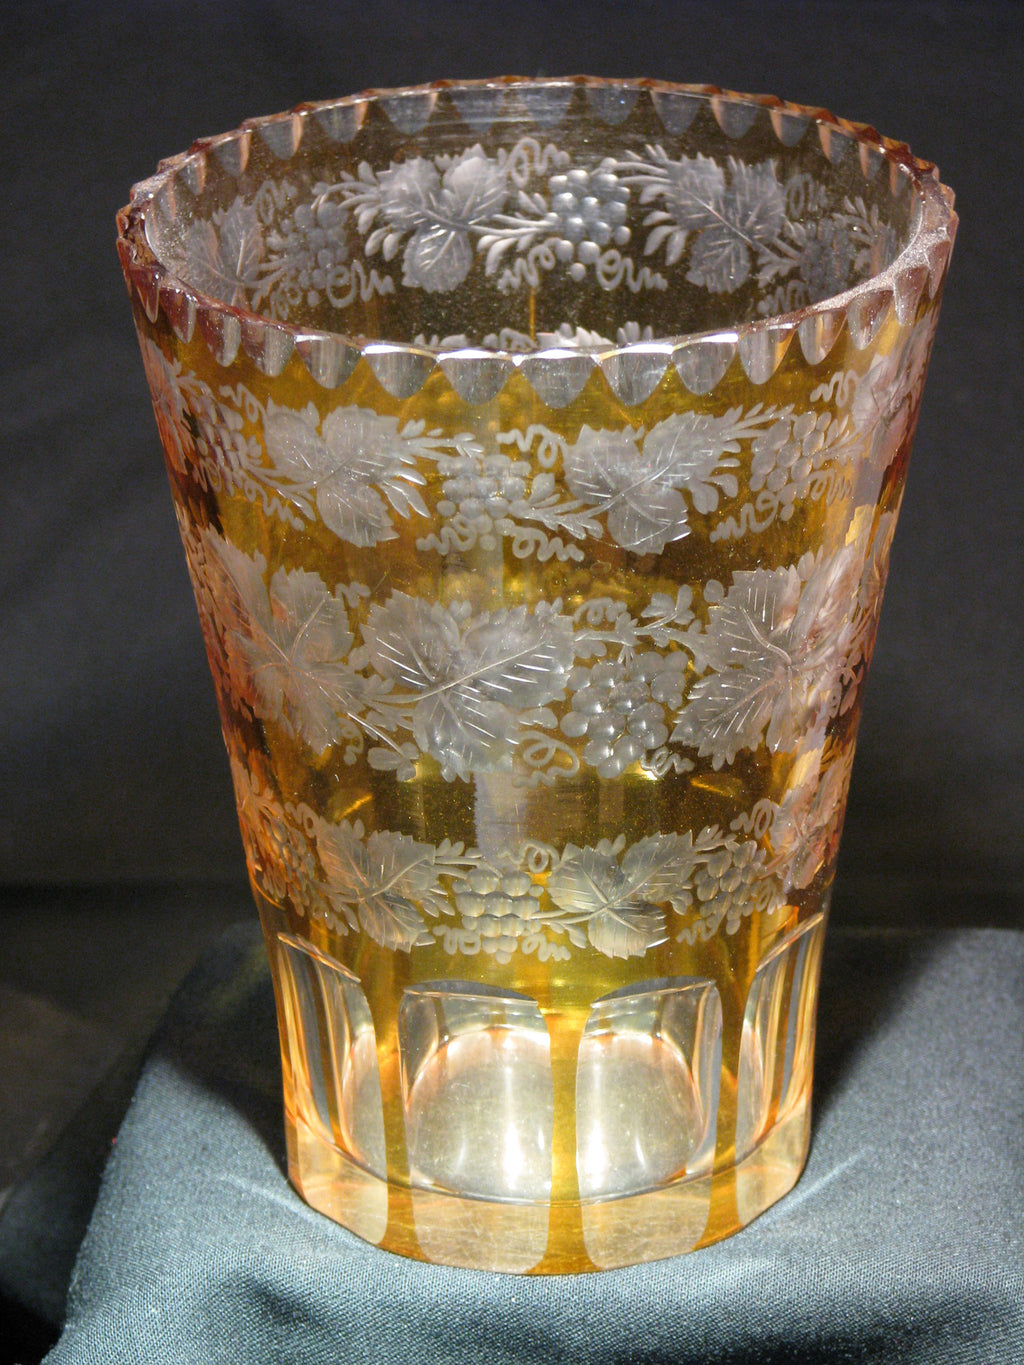 910012 Amber Flashed W/3 Rows Of Engraved Leaves & Grapes, 10 Rect, Bohemian Glassware, Antique, - ReeceFurniture.com - Free Local Pick Ups: Frankenmuth, MI, Indianapolis, IN, Chicago Ridge, IL, and Detroit, MI